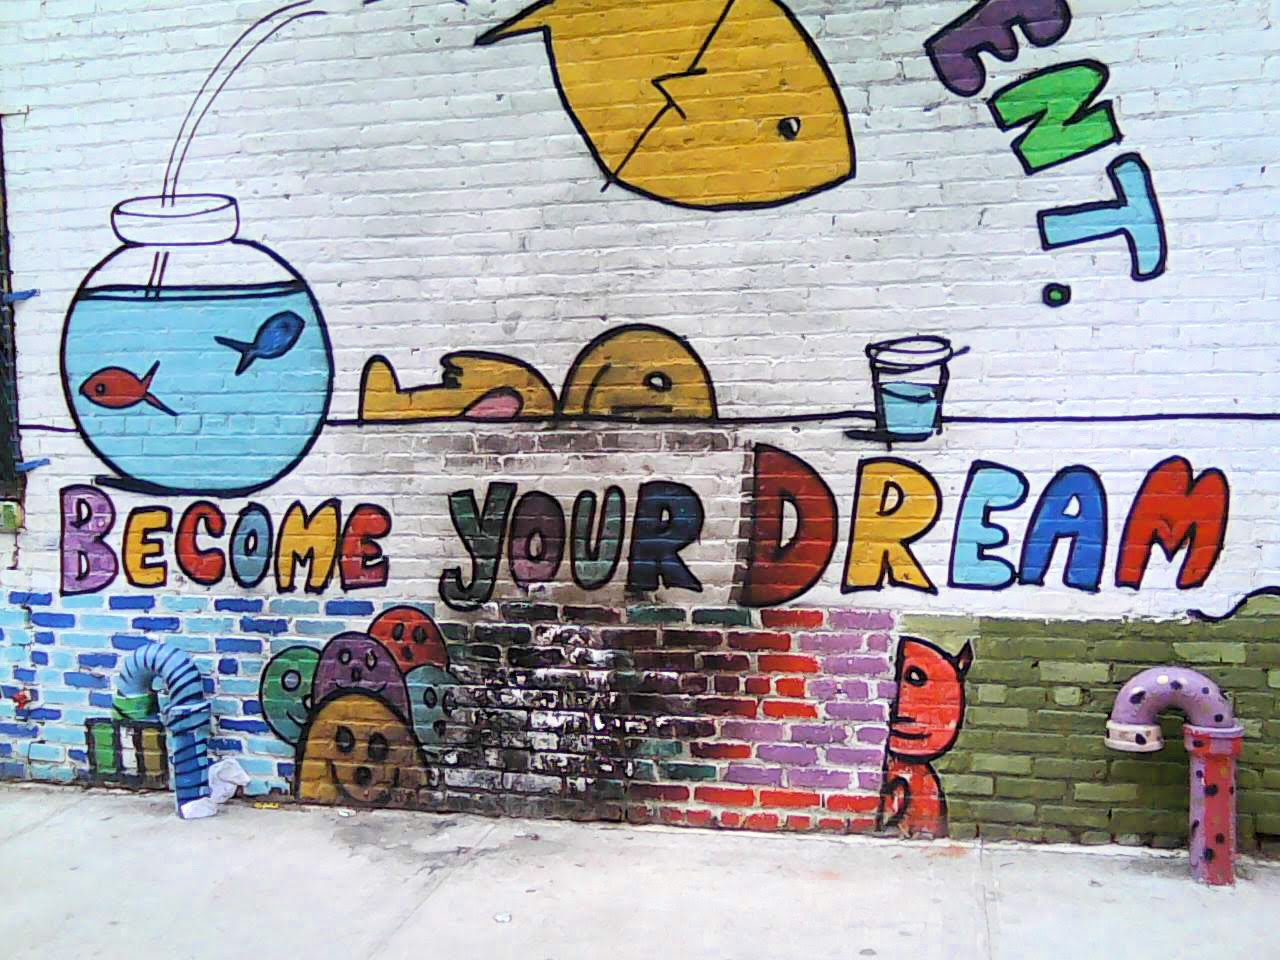 becomeyourdream